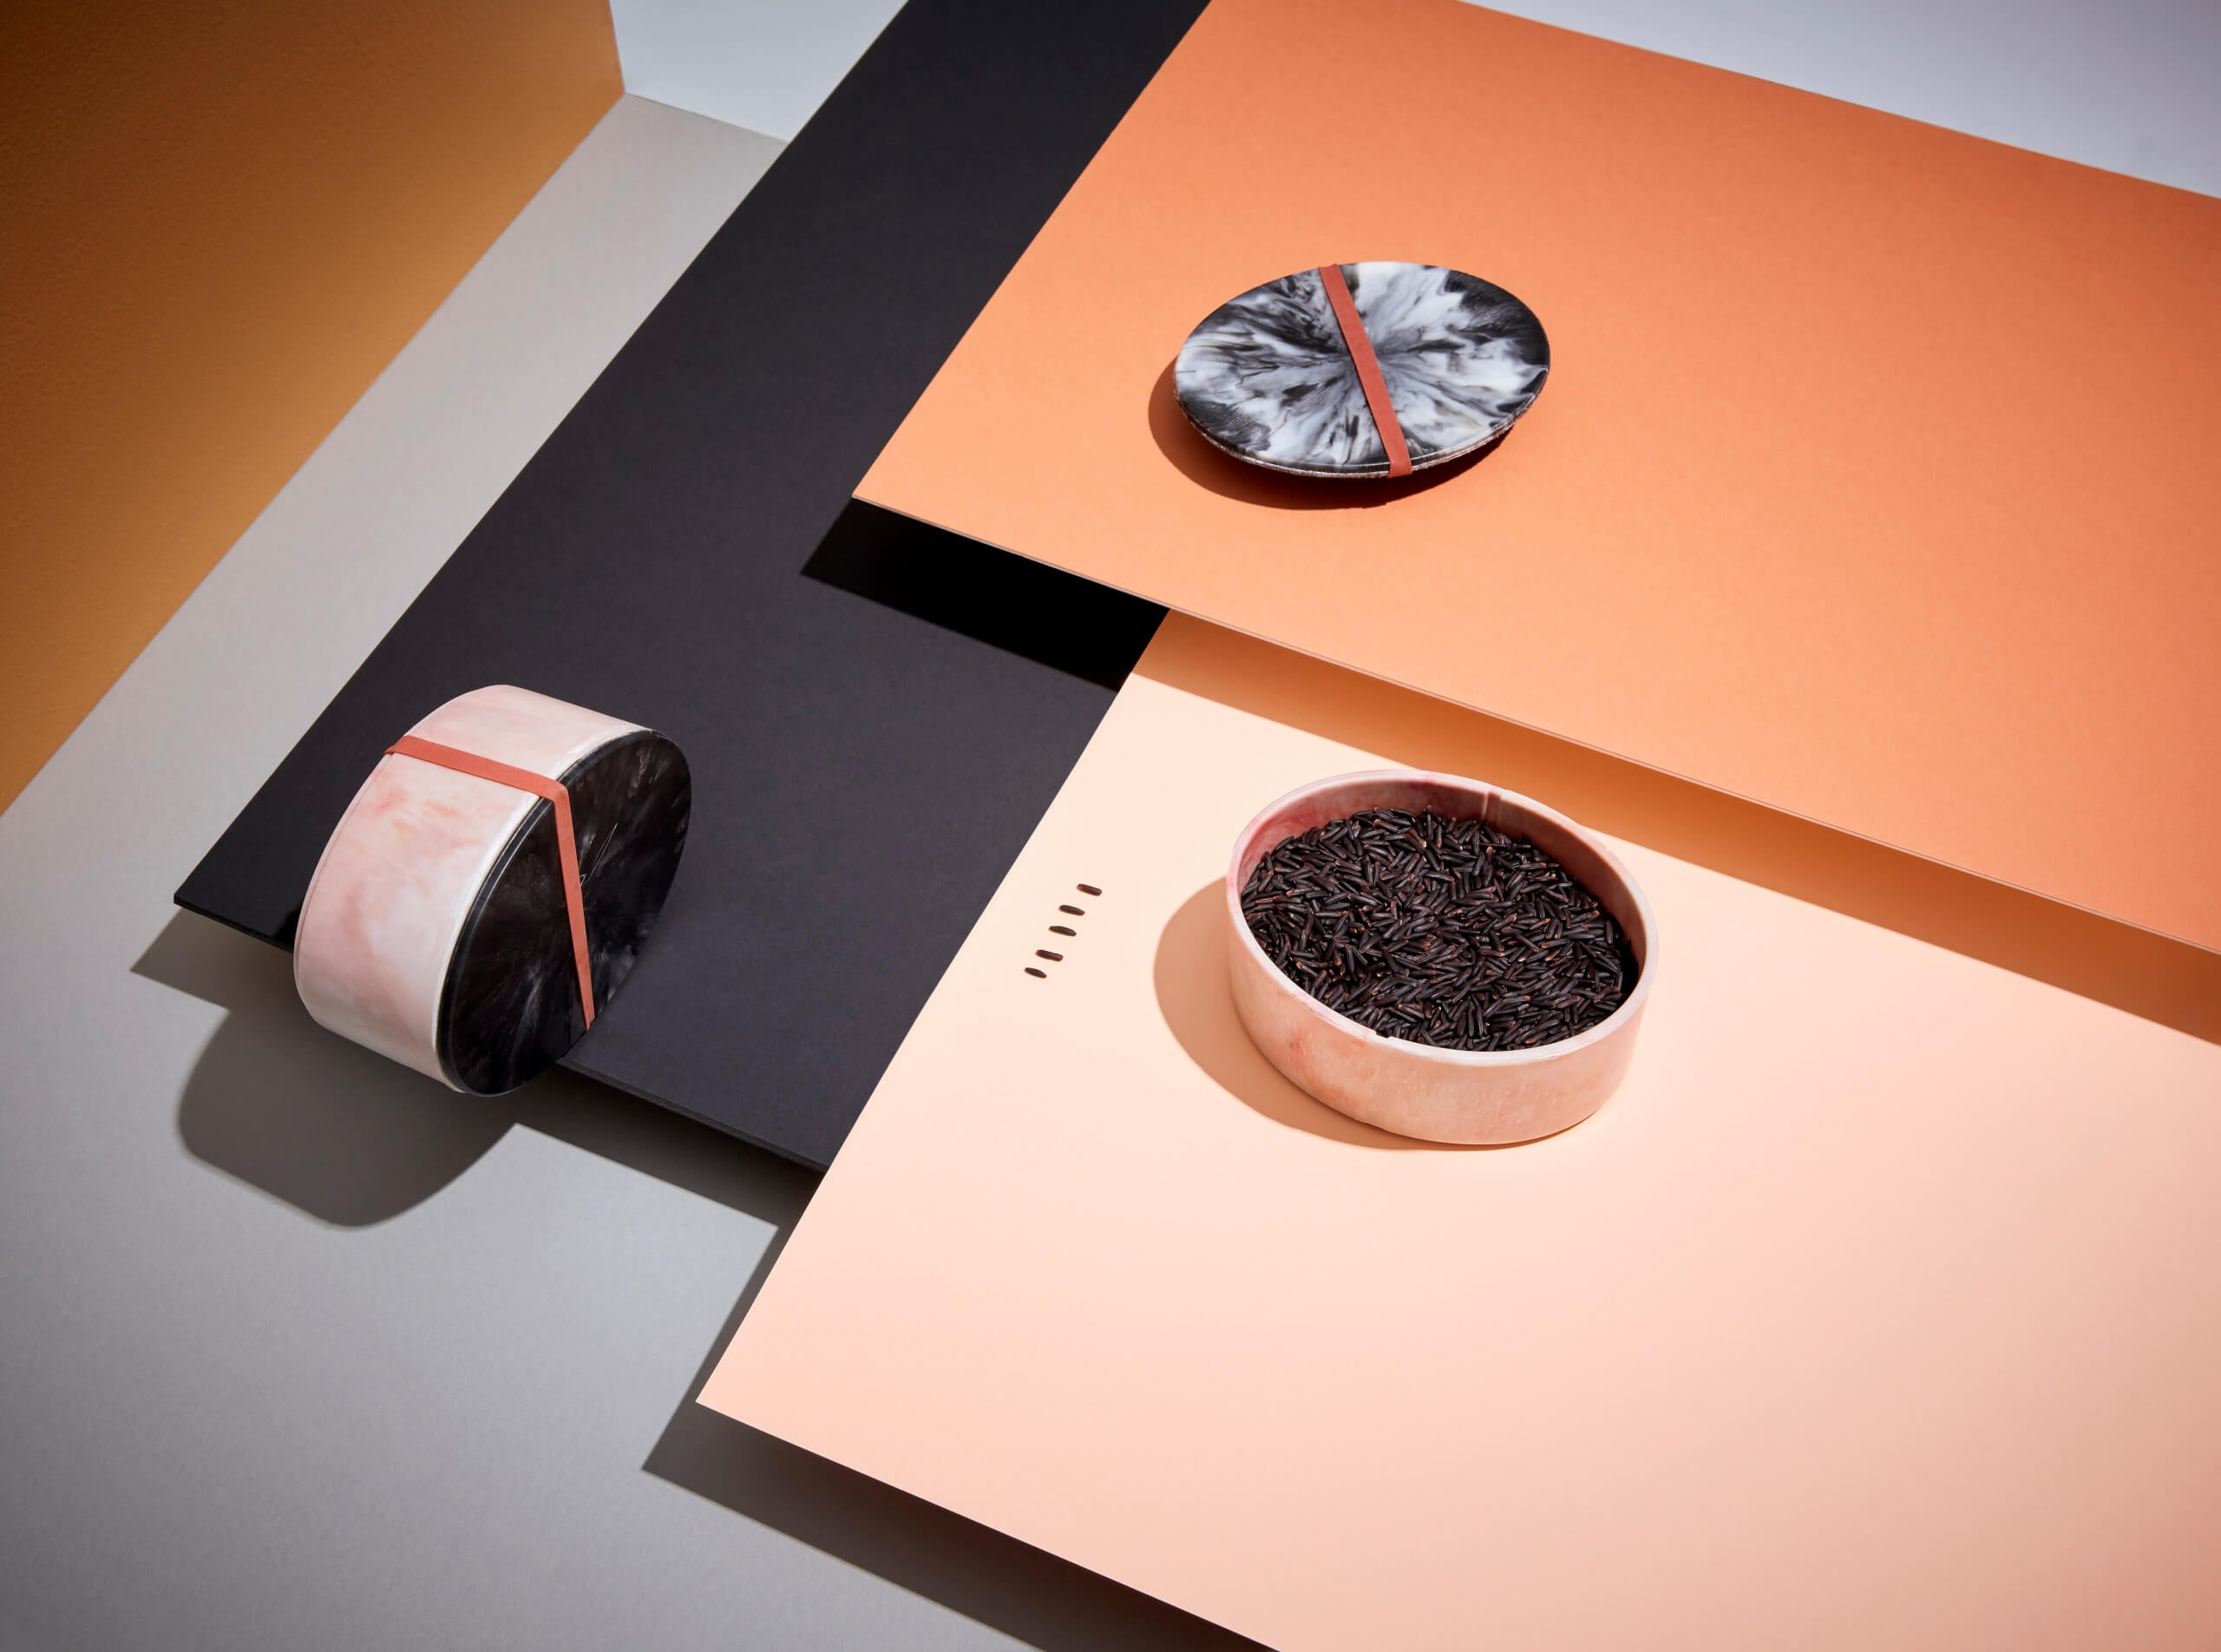 Marine Debris Bakelite bento boxes, innovated and designed by Sarah K and Andrew Simpson